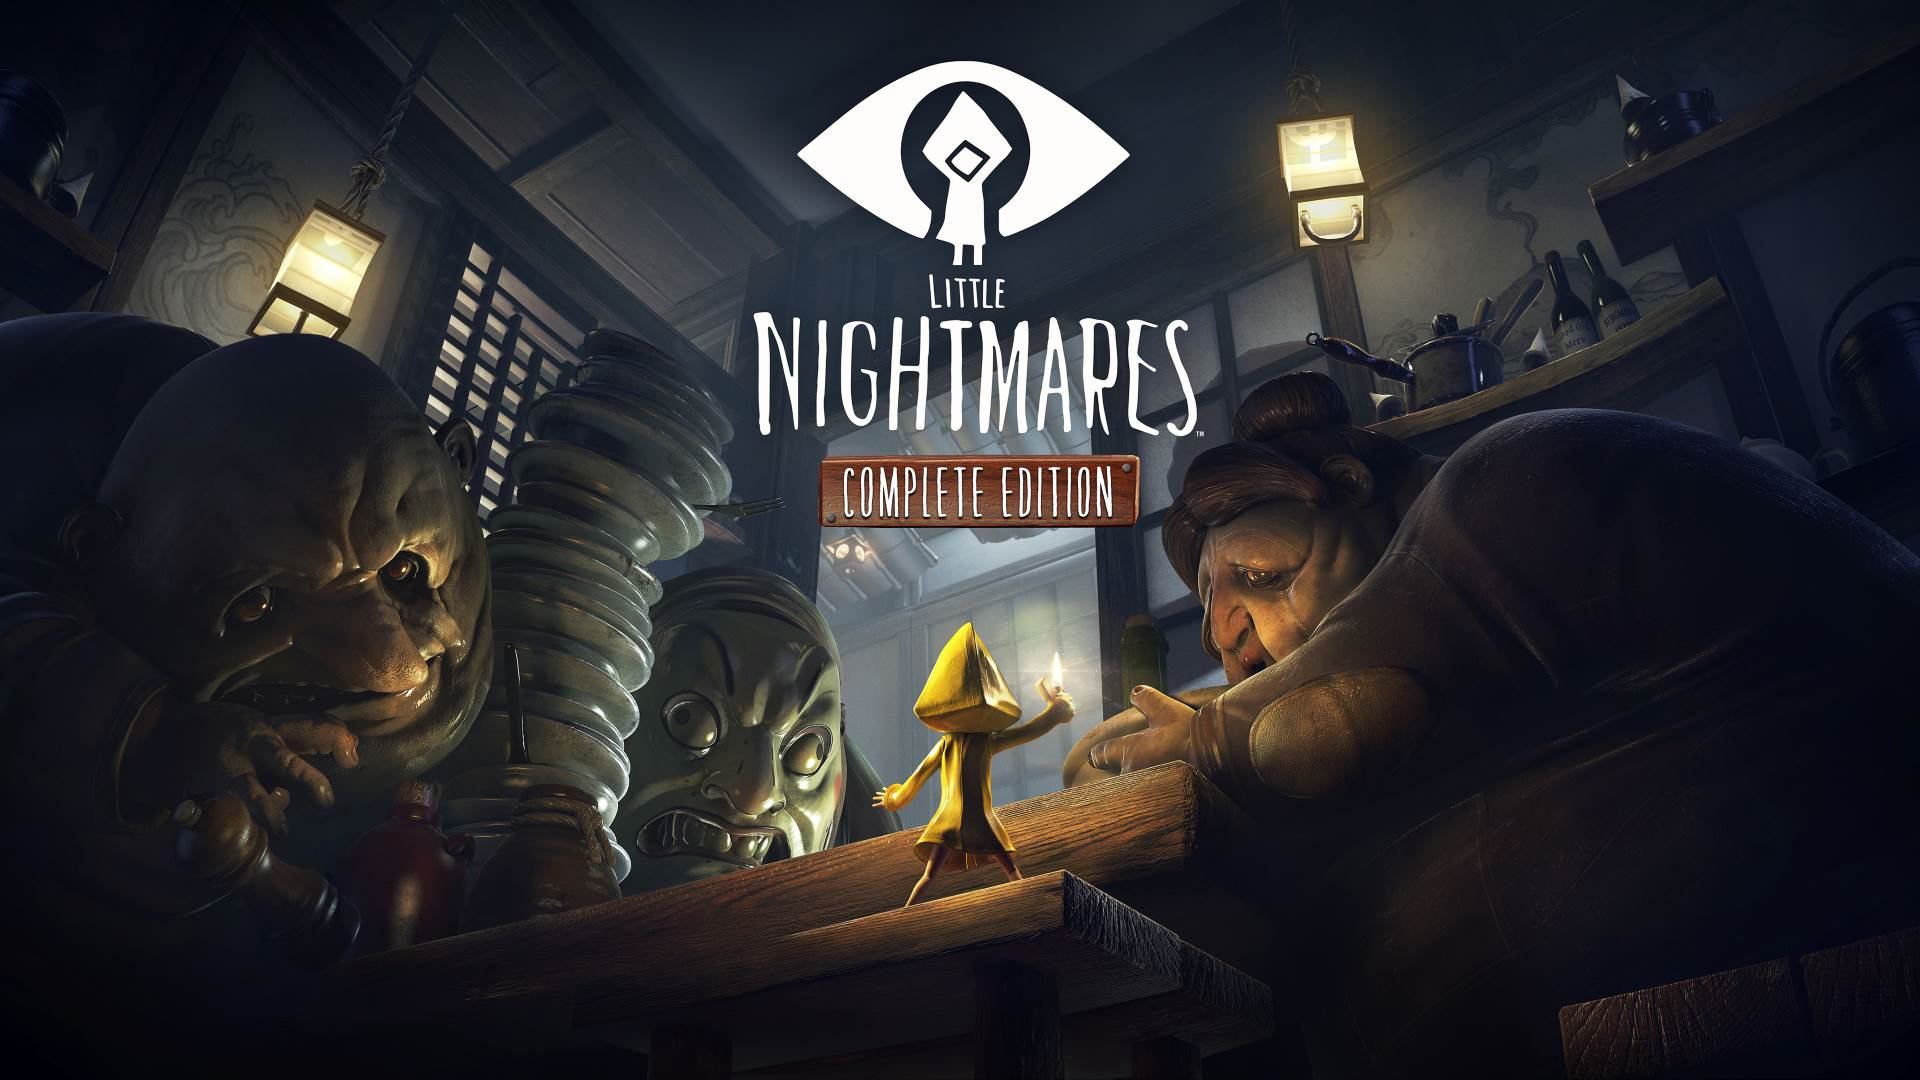 Little Nightmares Complete Edition | The VGProfessional Review